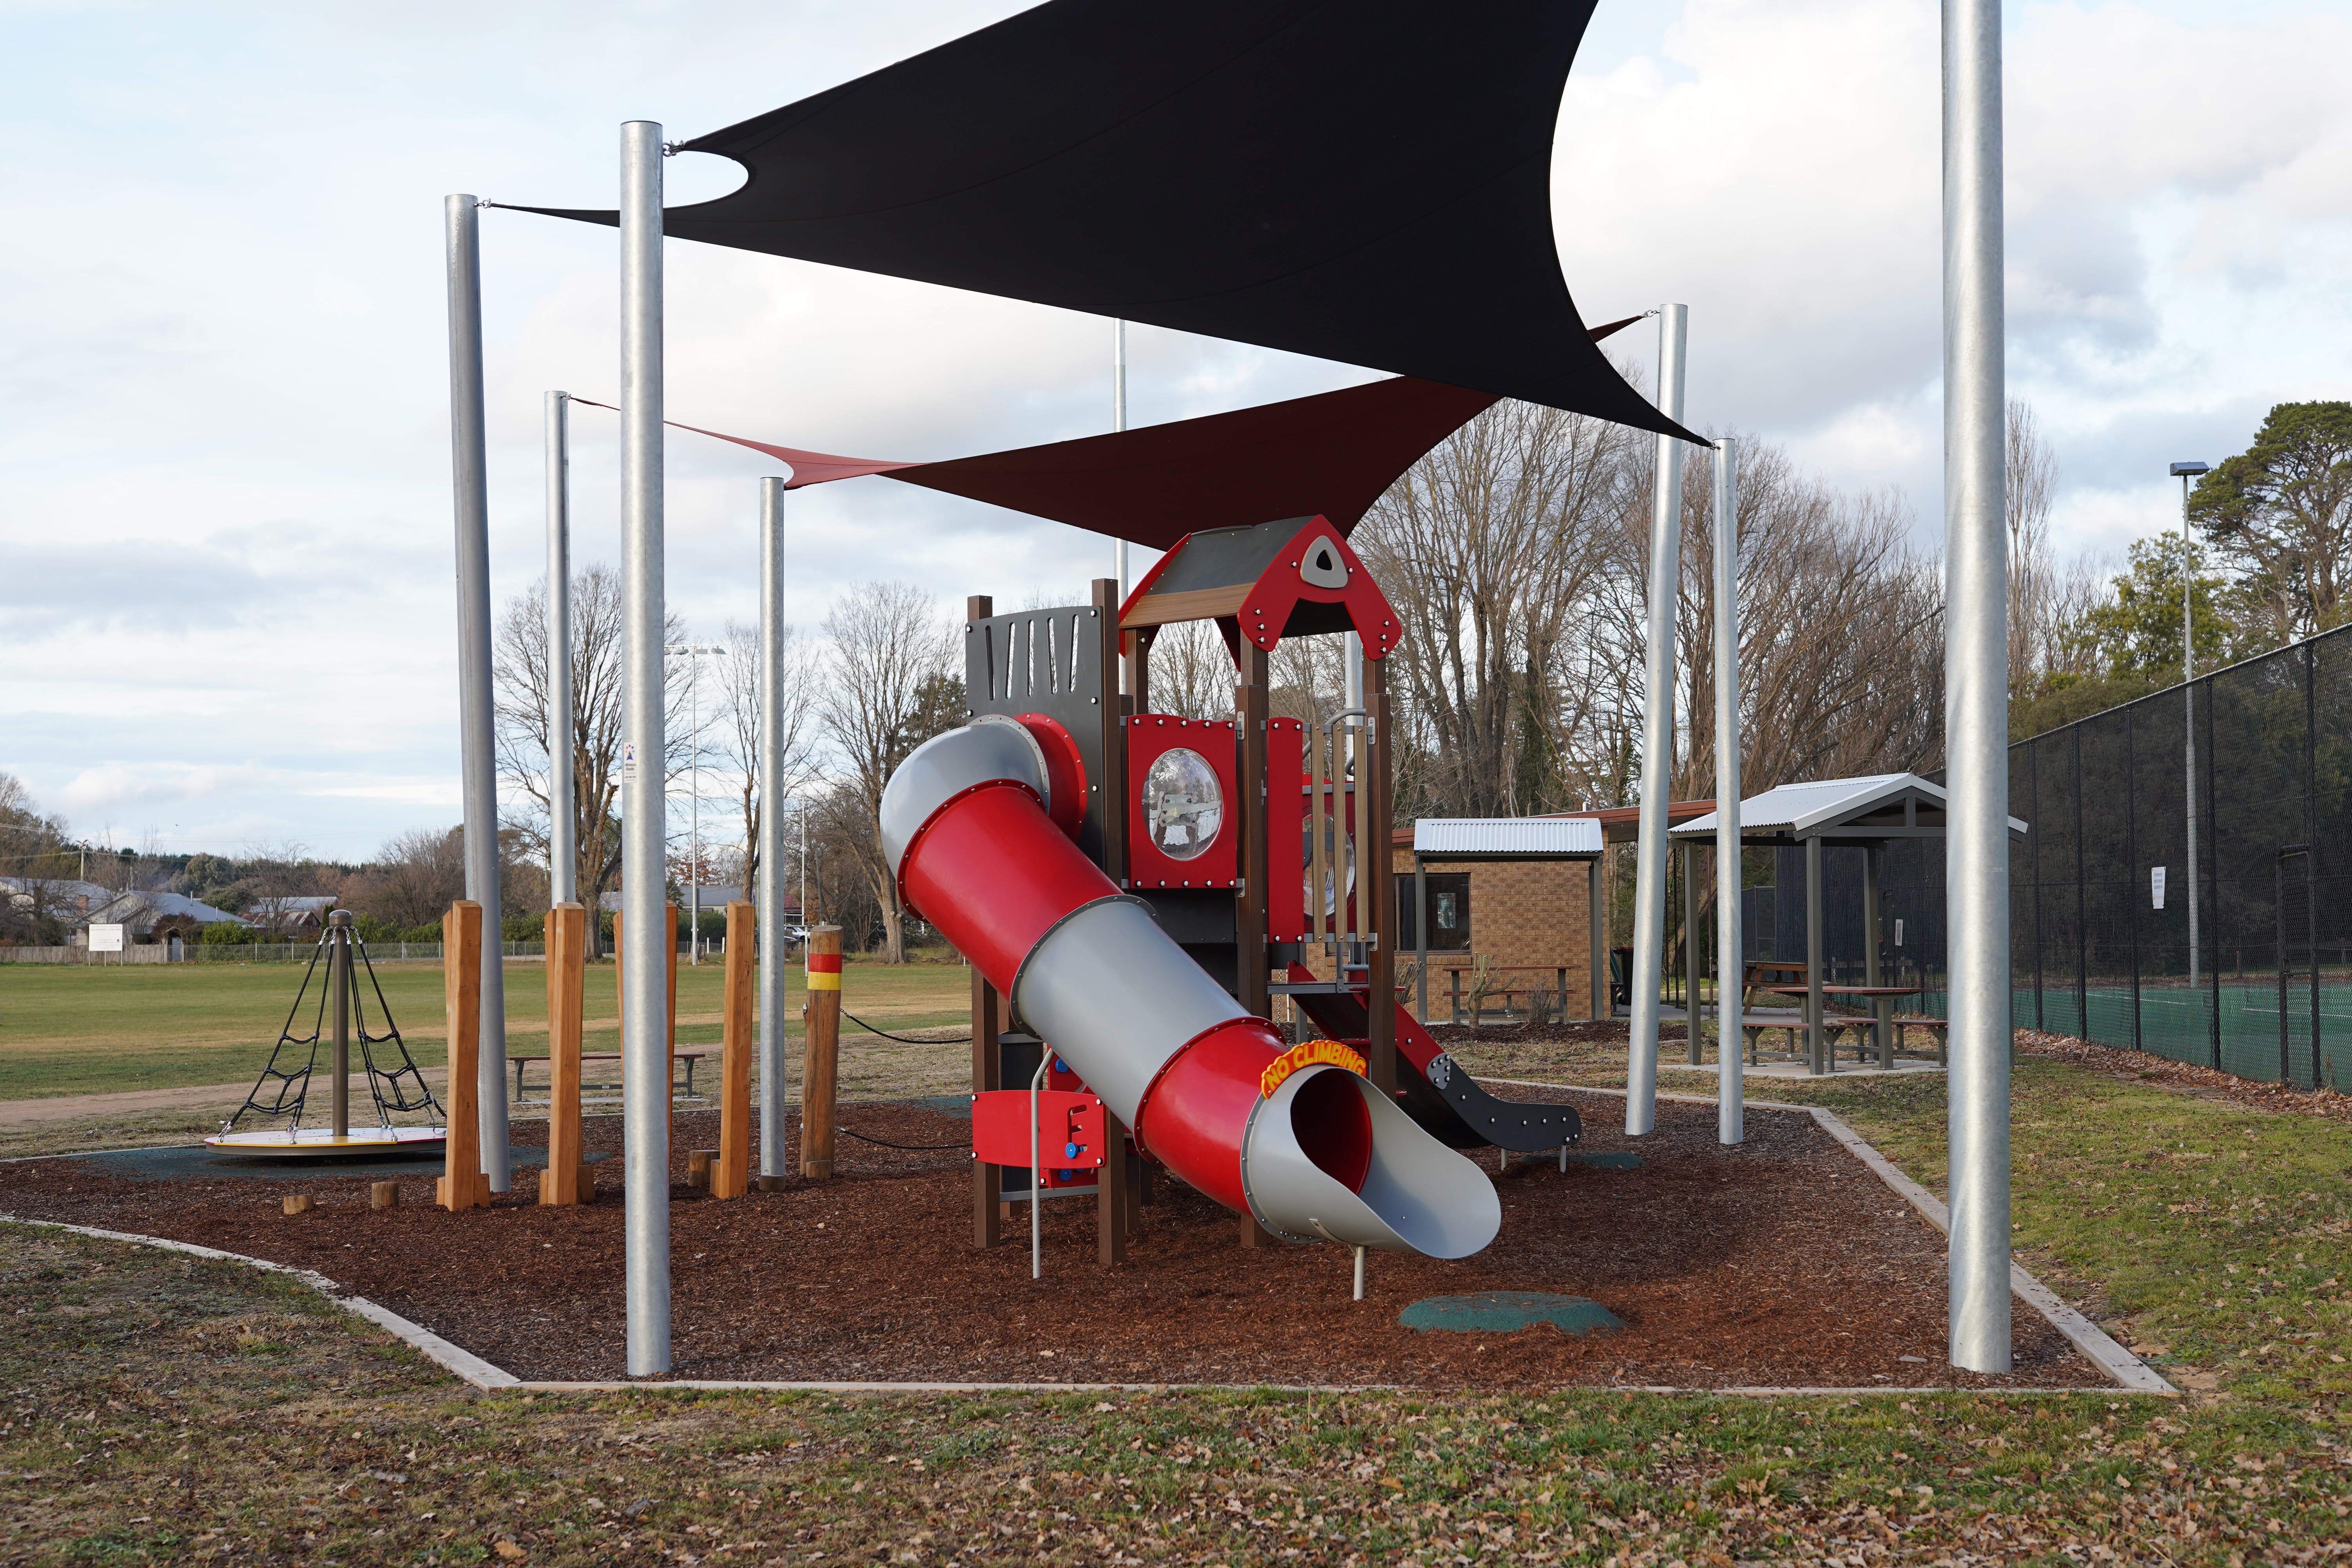 Braidwood Recreation Grounds and Playground - Accommodation BNB